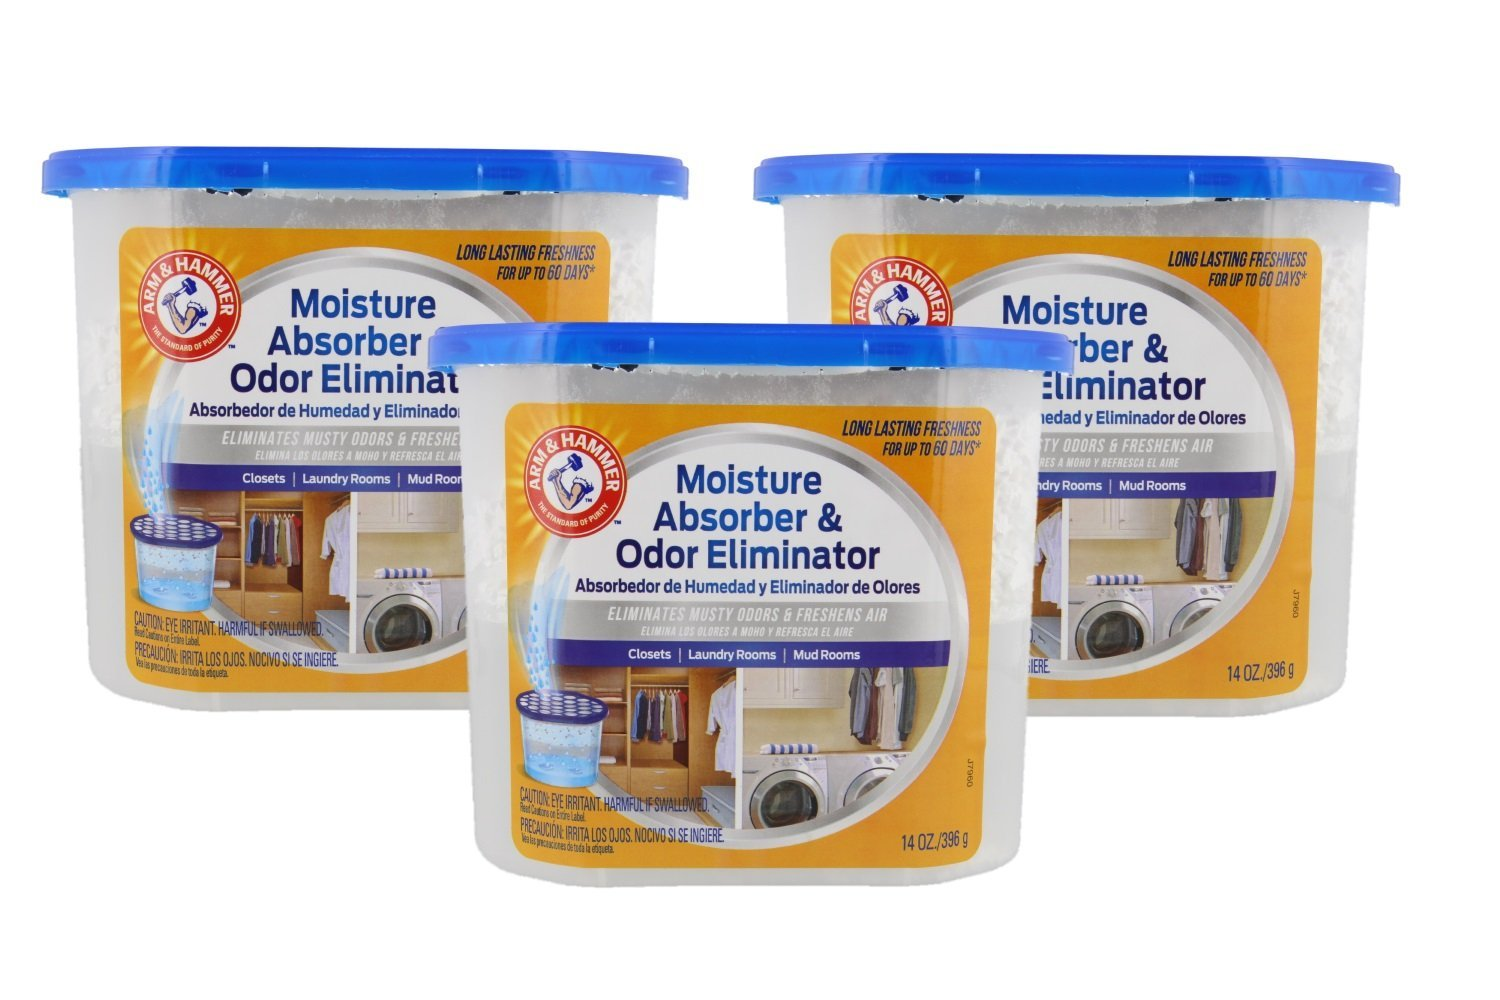 Amazon.com: Arm & Hammer FGAH14 14 Moisture Absorber & Max Odor Eliminator Tub, 14 oz (6 pack): Health & Personal Care